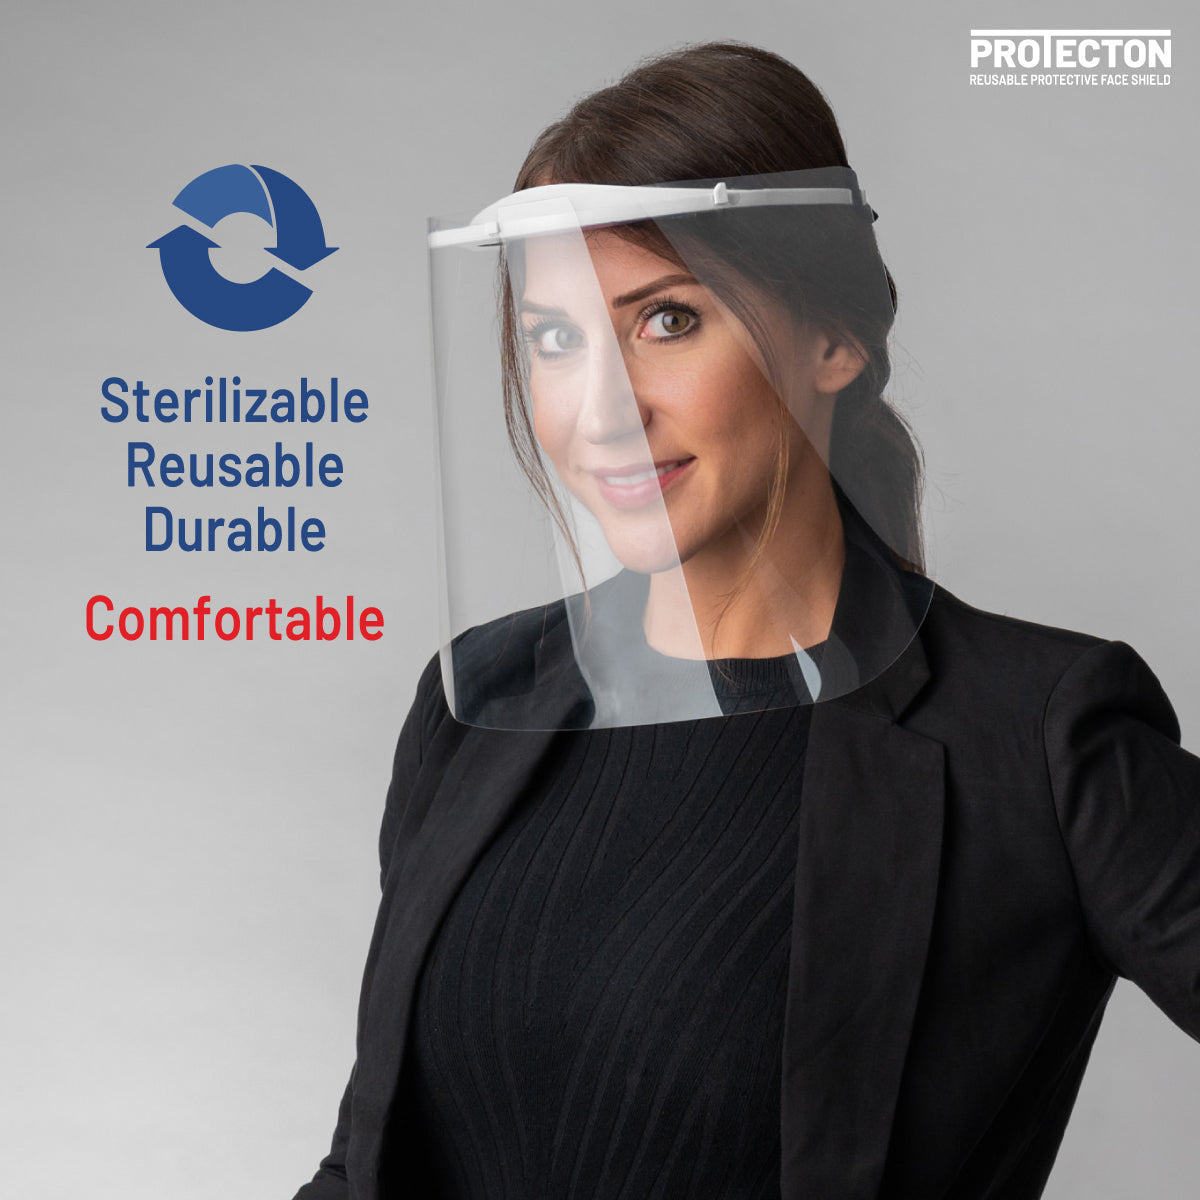 ProtectON Reusable Protective Face Shield